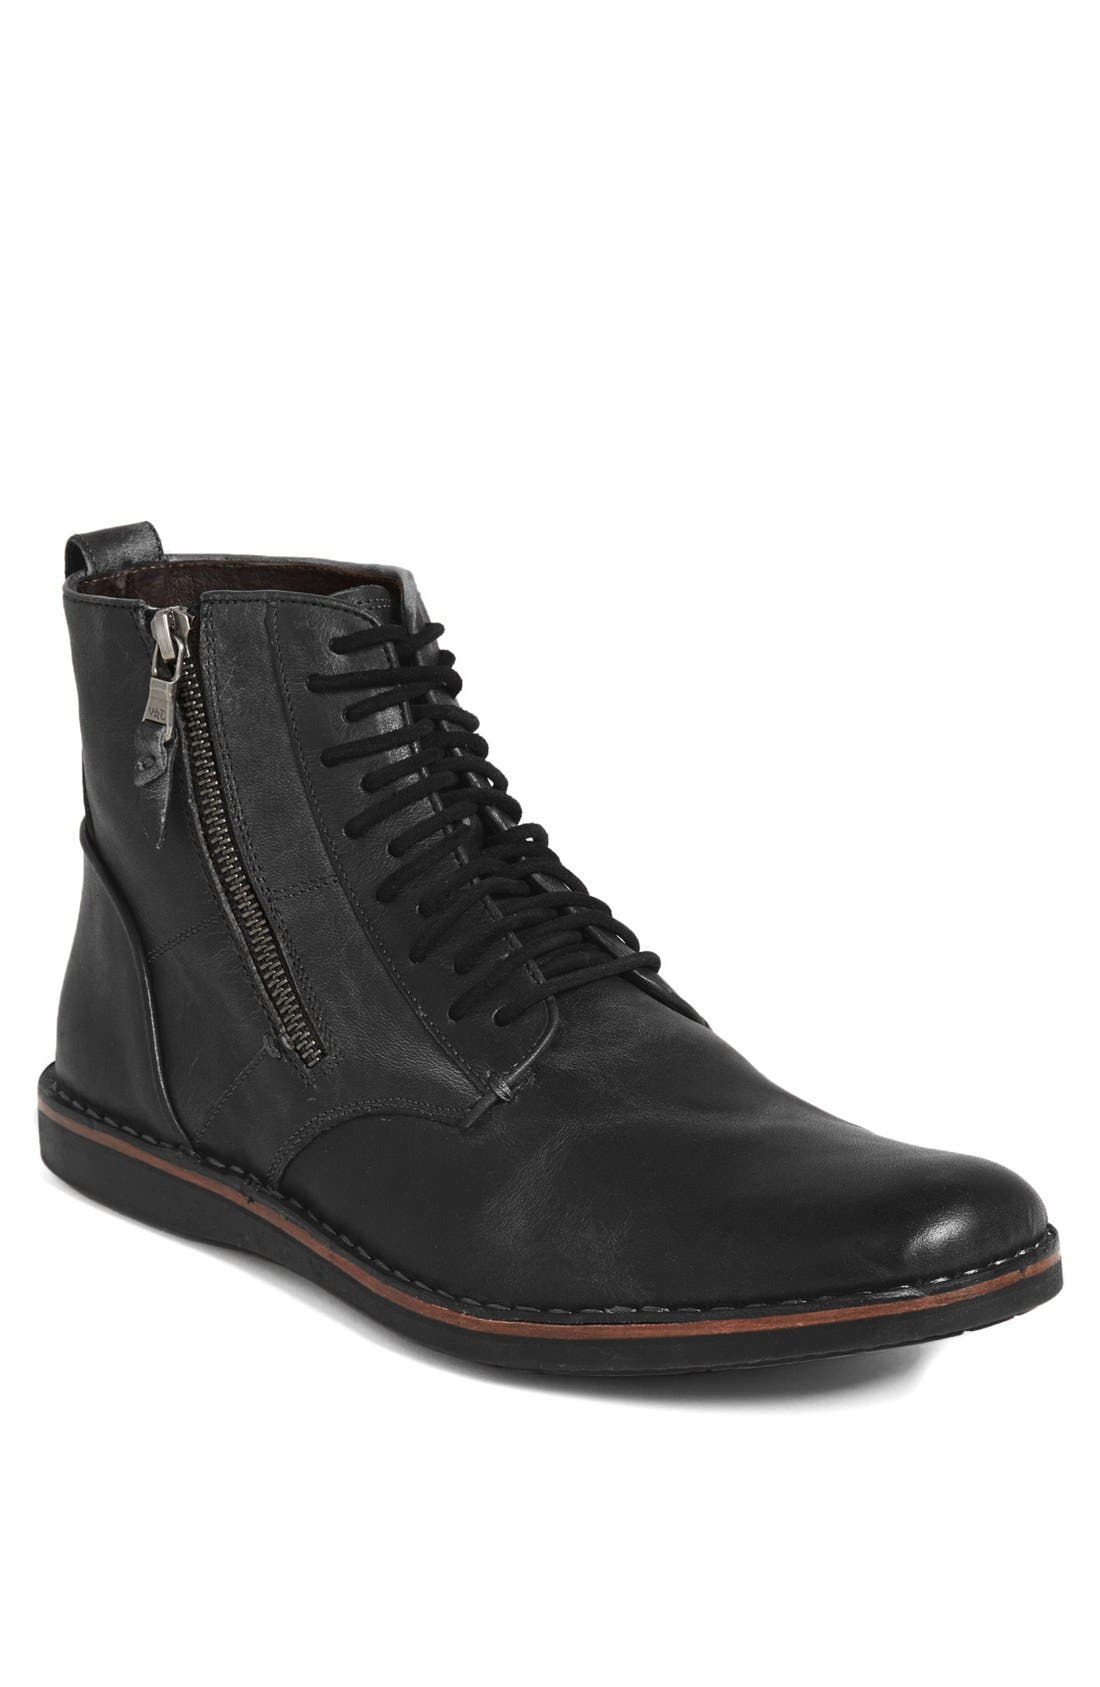 Alternate Image 1 Selected - John Varvatos Star USA 'Barrett' Plain Toe Boot (Men) (Online Only)